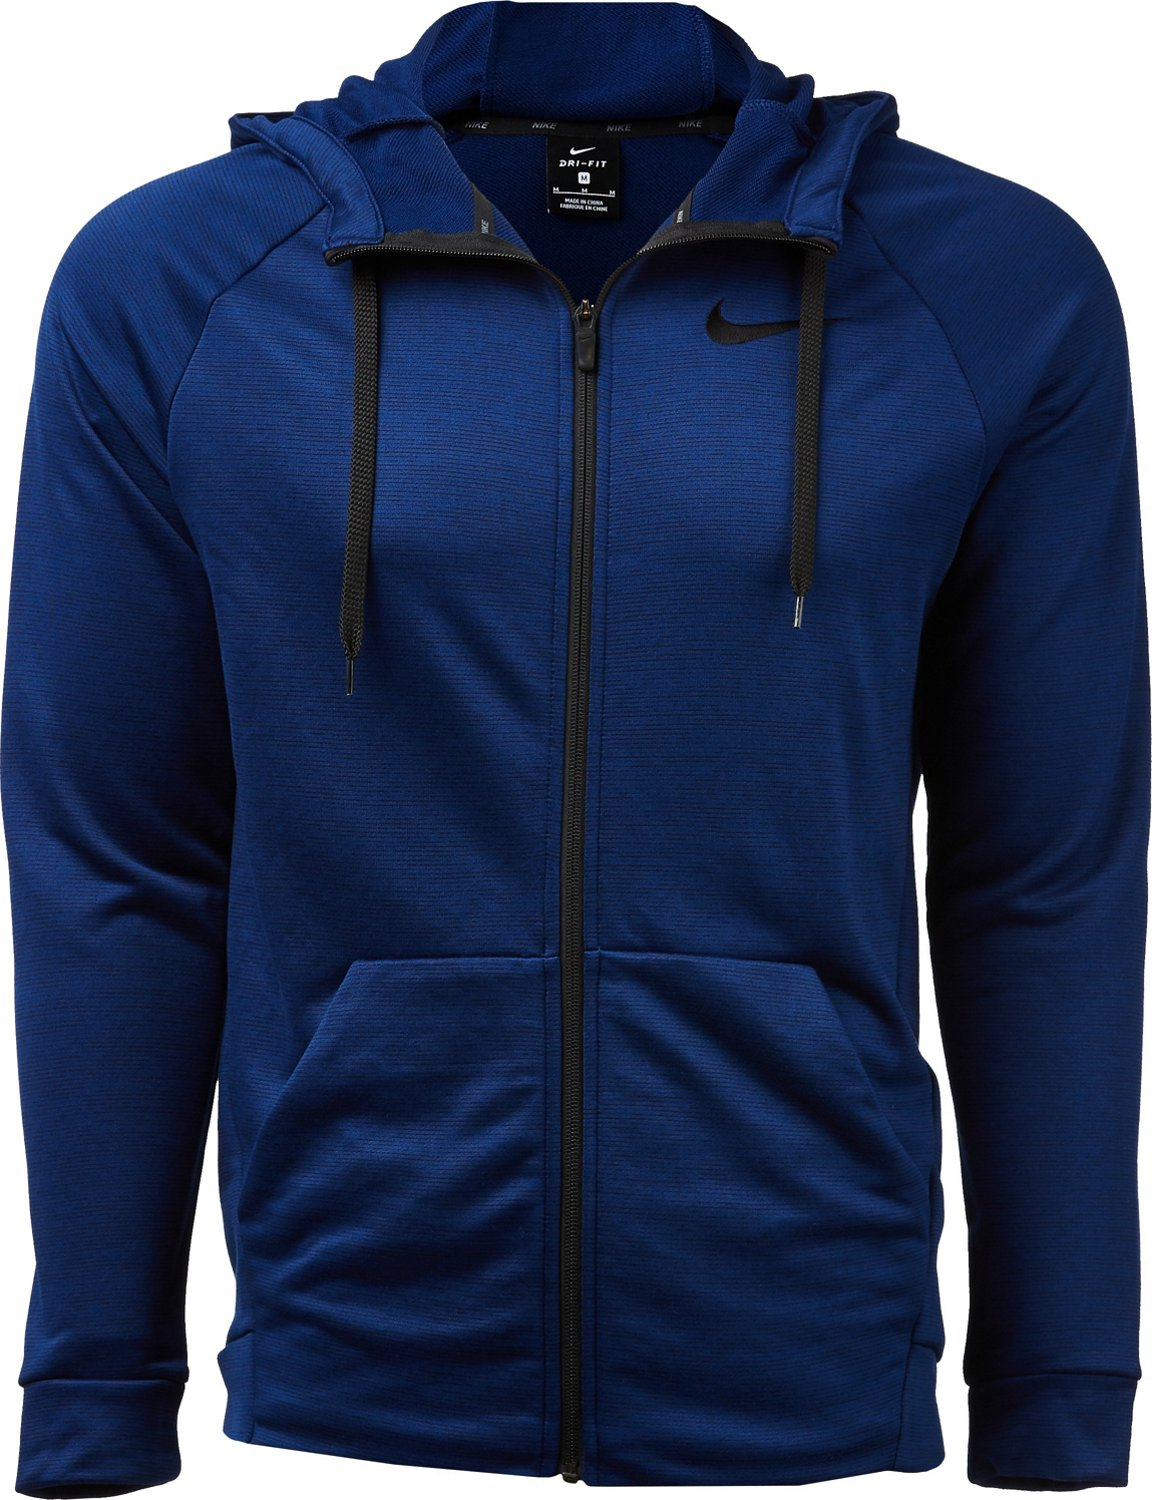 c76529247106 Display product reviews for Nike Men s Dry Training Hoodie This product is  currently selected